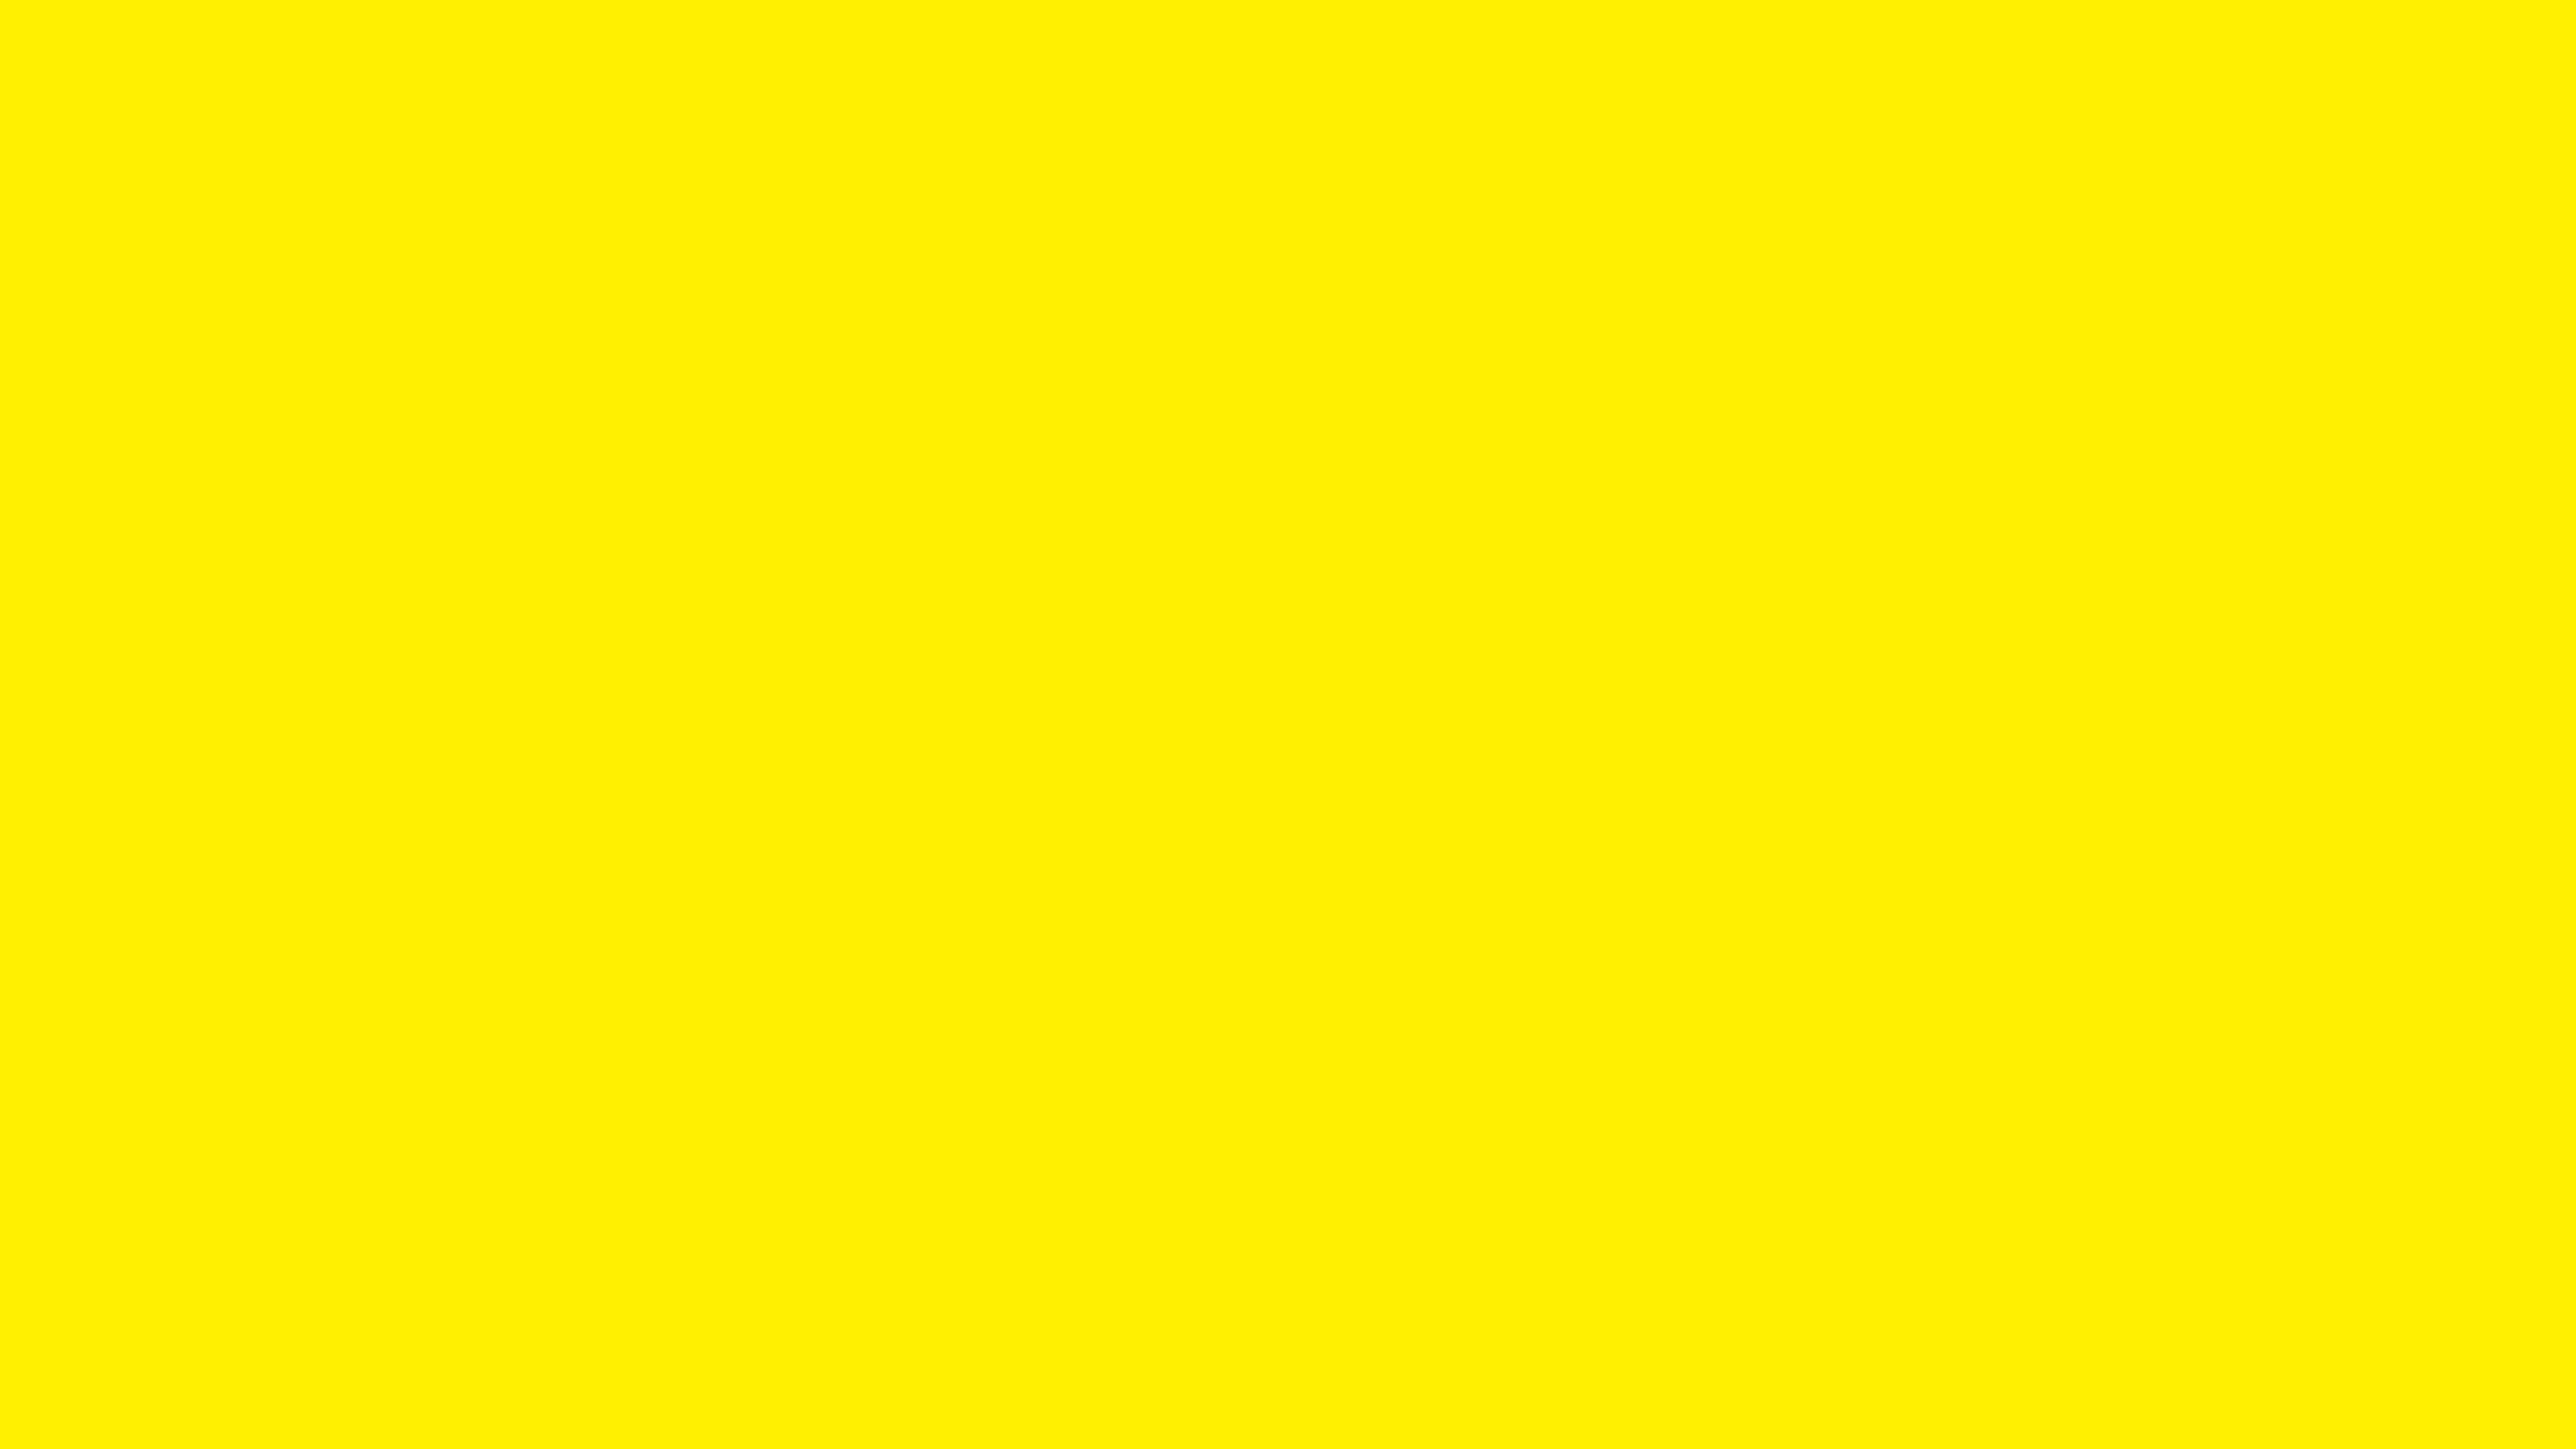 3840x2160 Yellow Process Solid Color Background